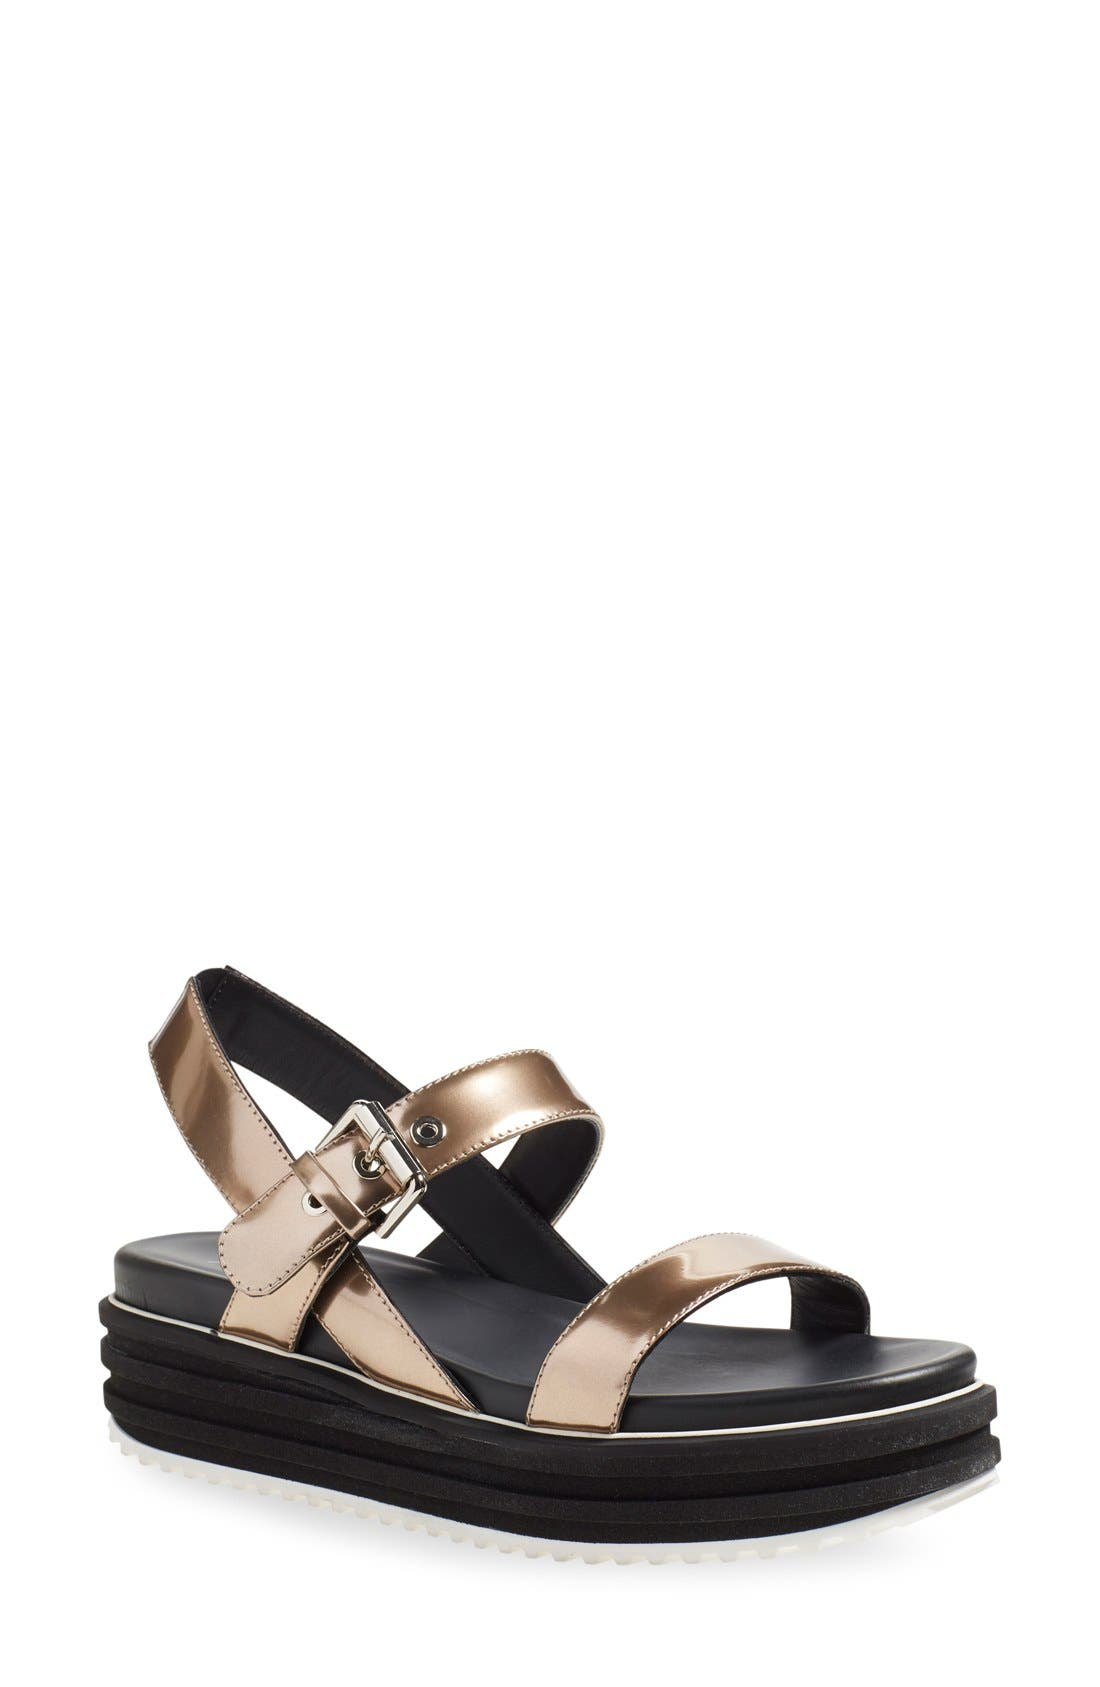 Alternate Image 1 Selected - Aquatalia 'Wanette' Sandal (Women)